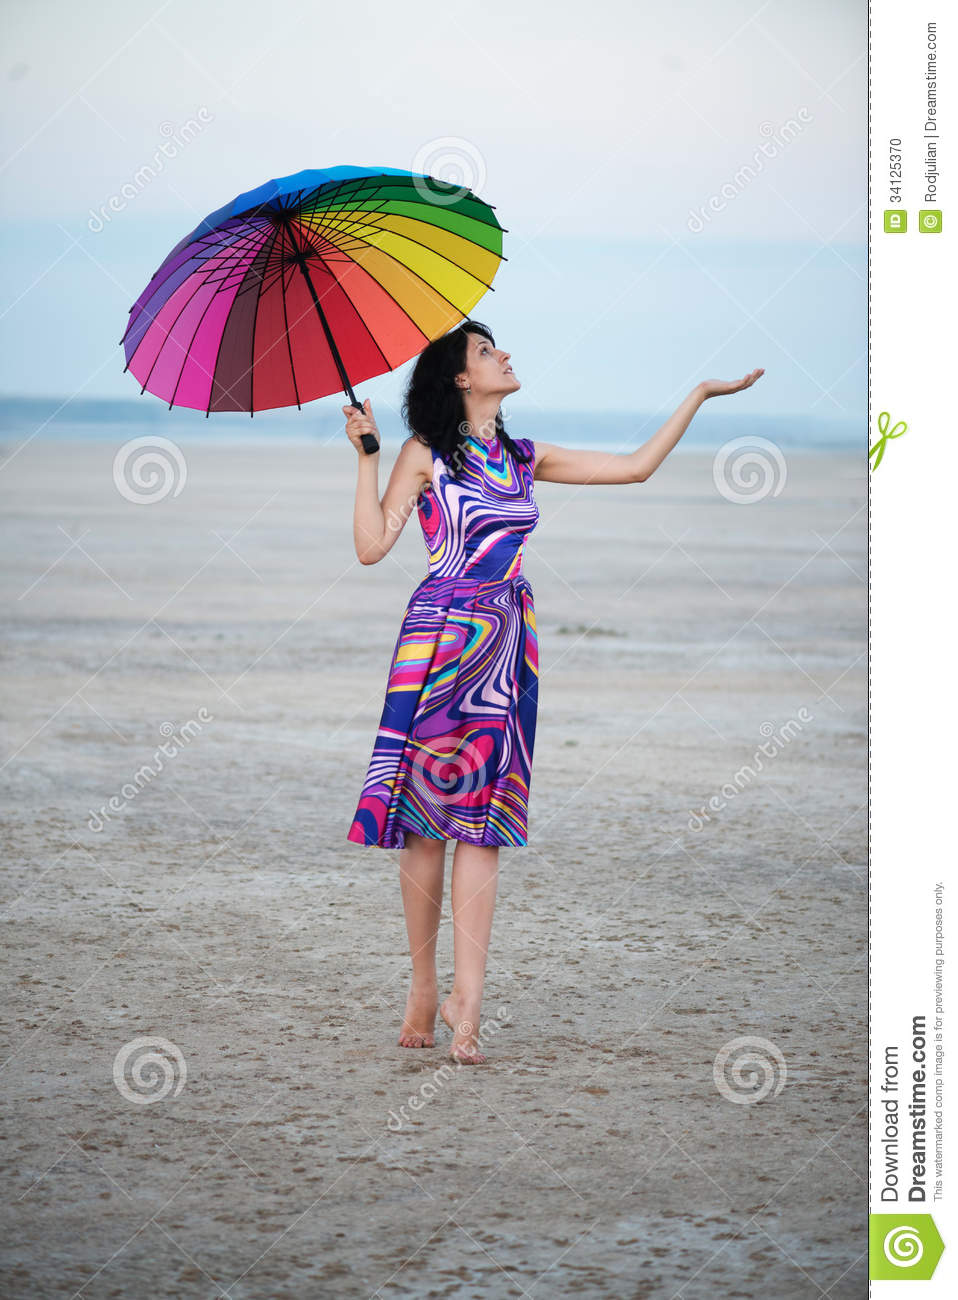 Barefooted Woman With Colorful Umbrella Stock Photo ...